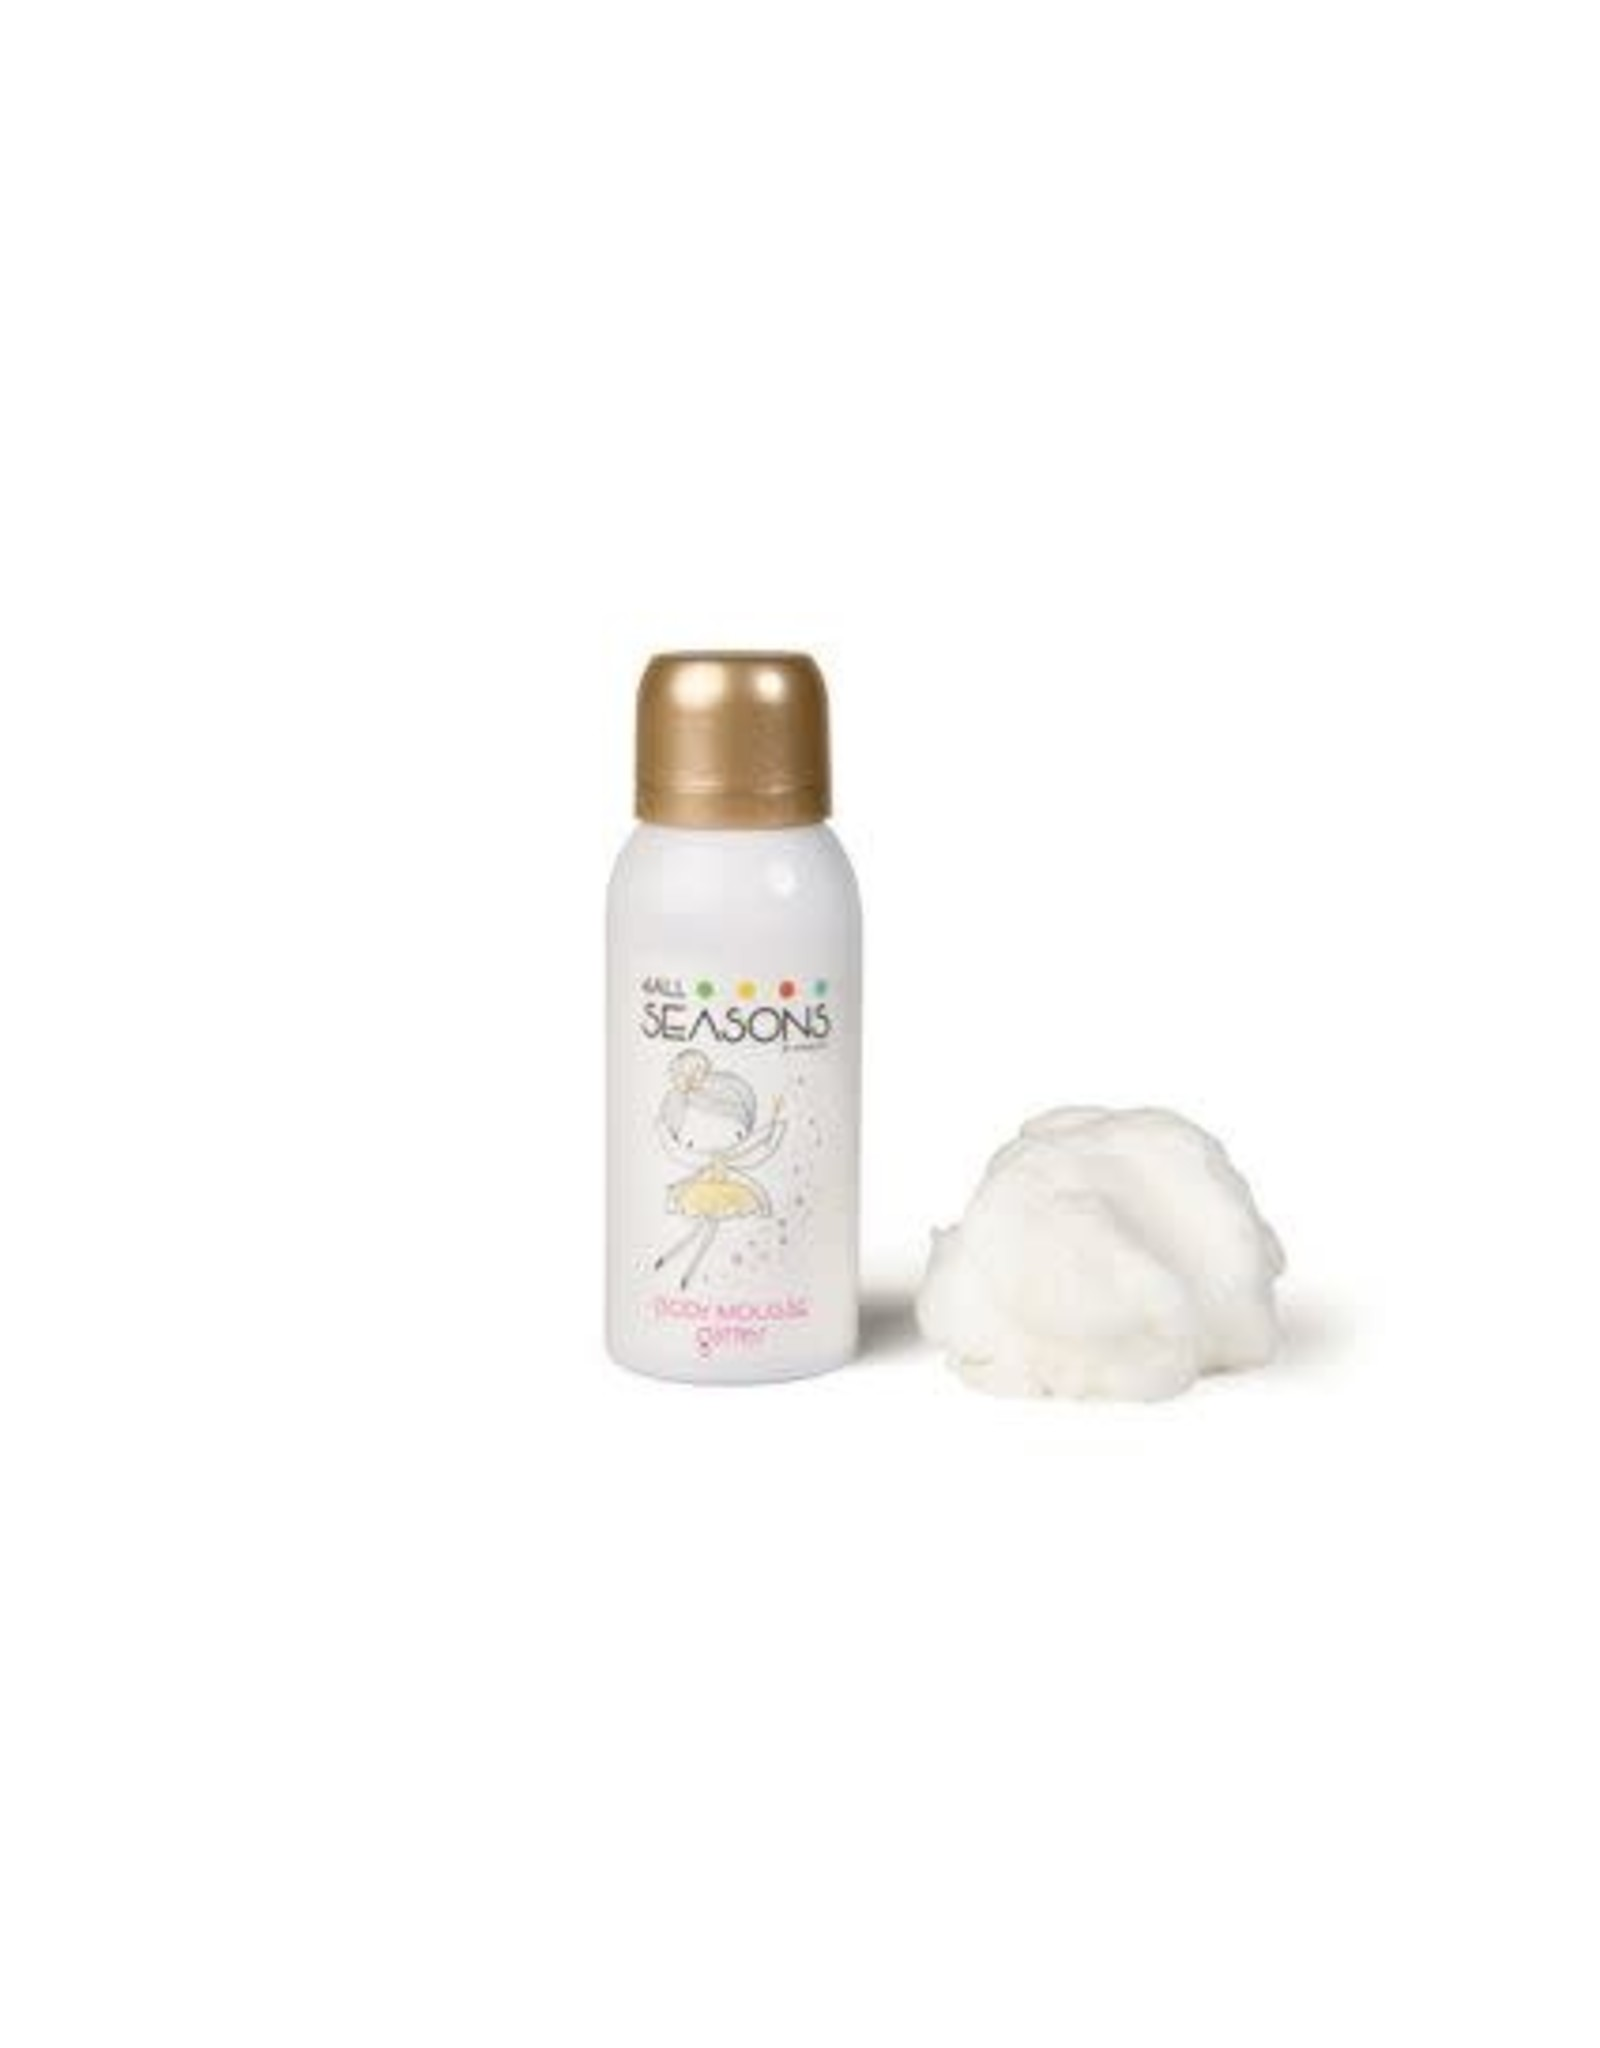 4all seasons Body mousse sparkling princess (glitter ) 100ml